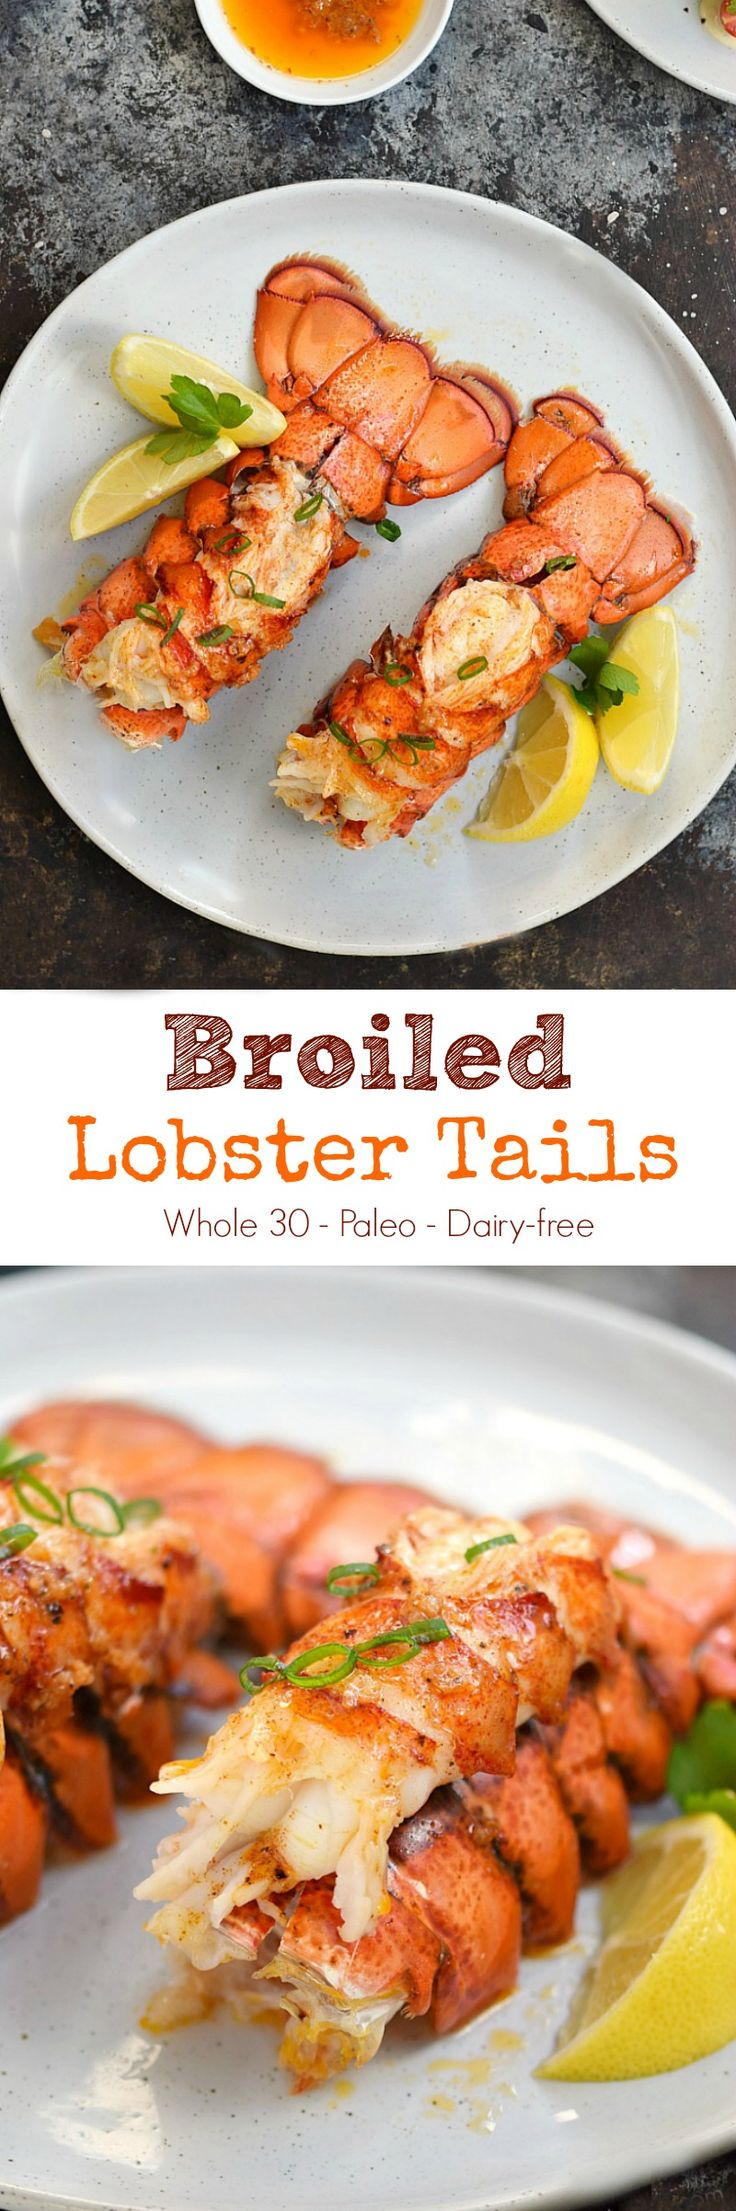 Make date night extra special with Broiled Lobster Tails that are served with garlic butter on the side. They're ready in minutes and truly decadent | cookingwithcurls.com #whole30recipes